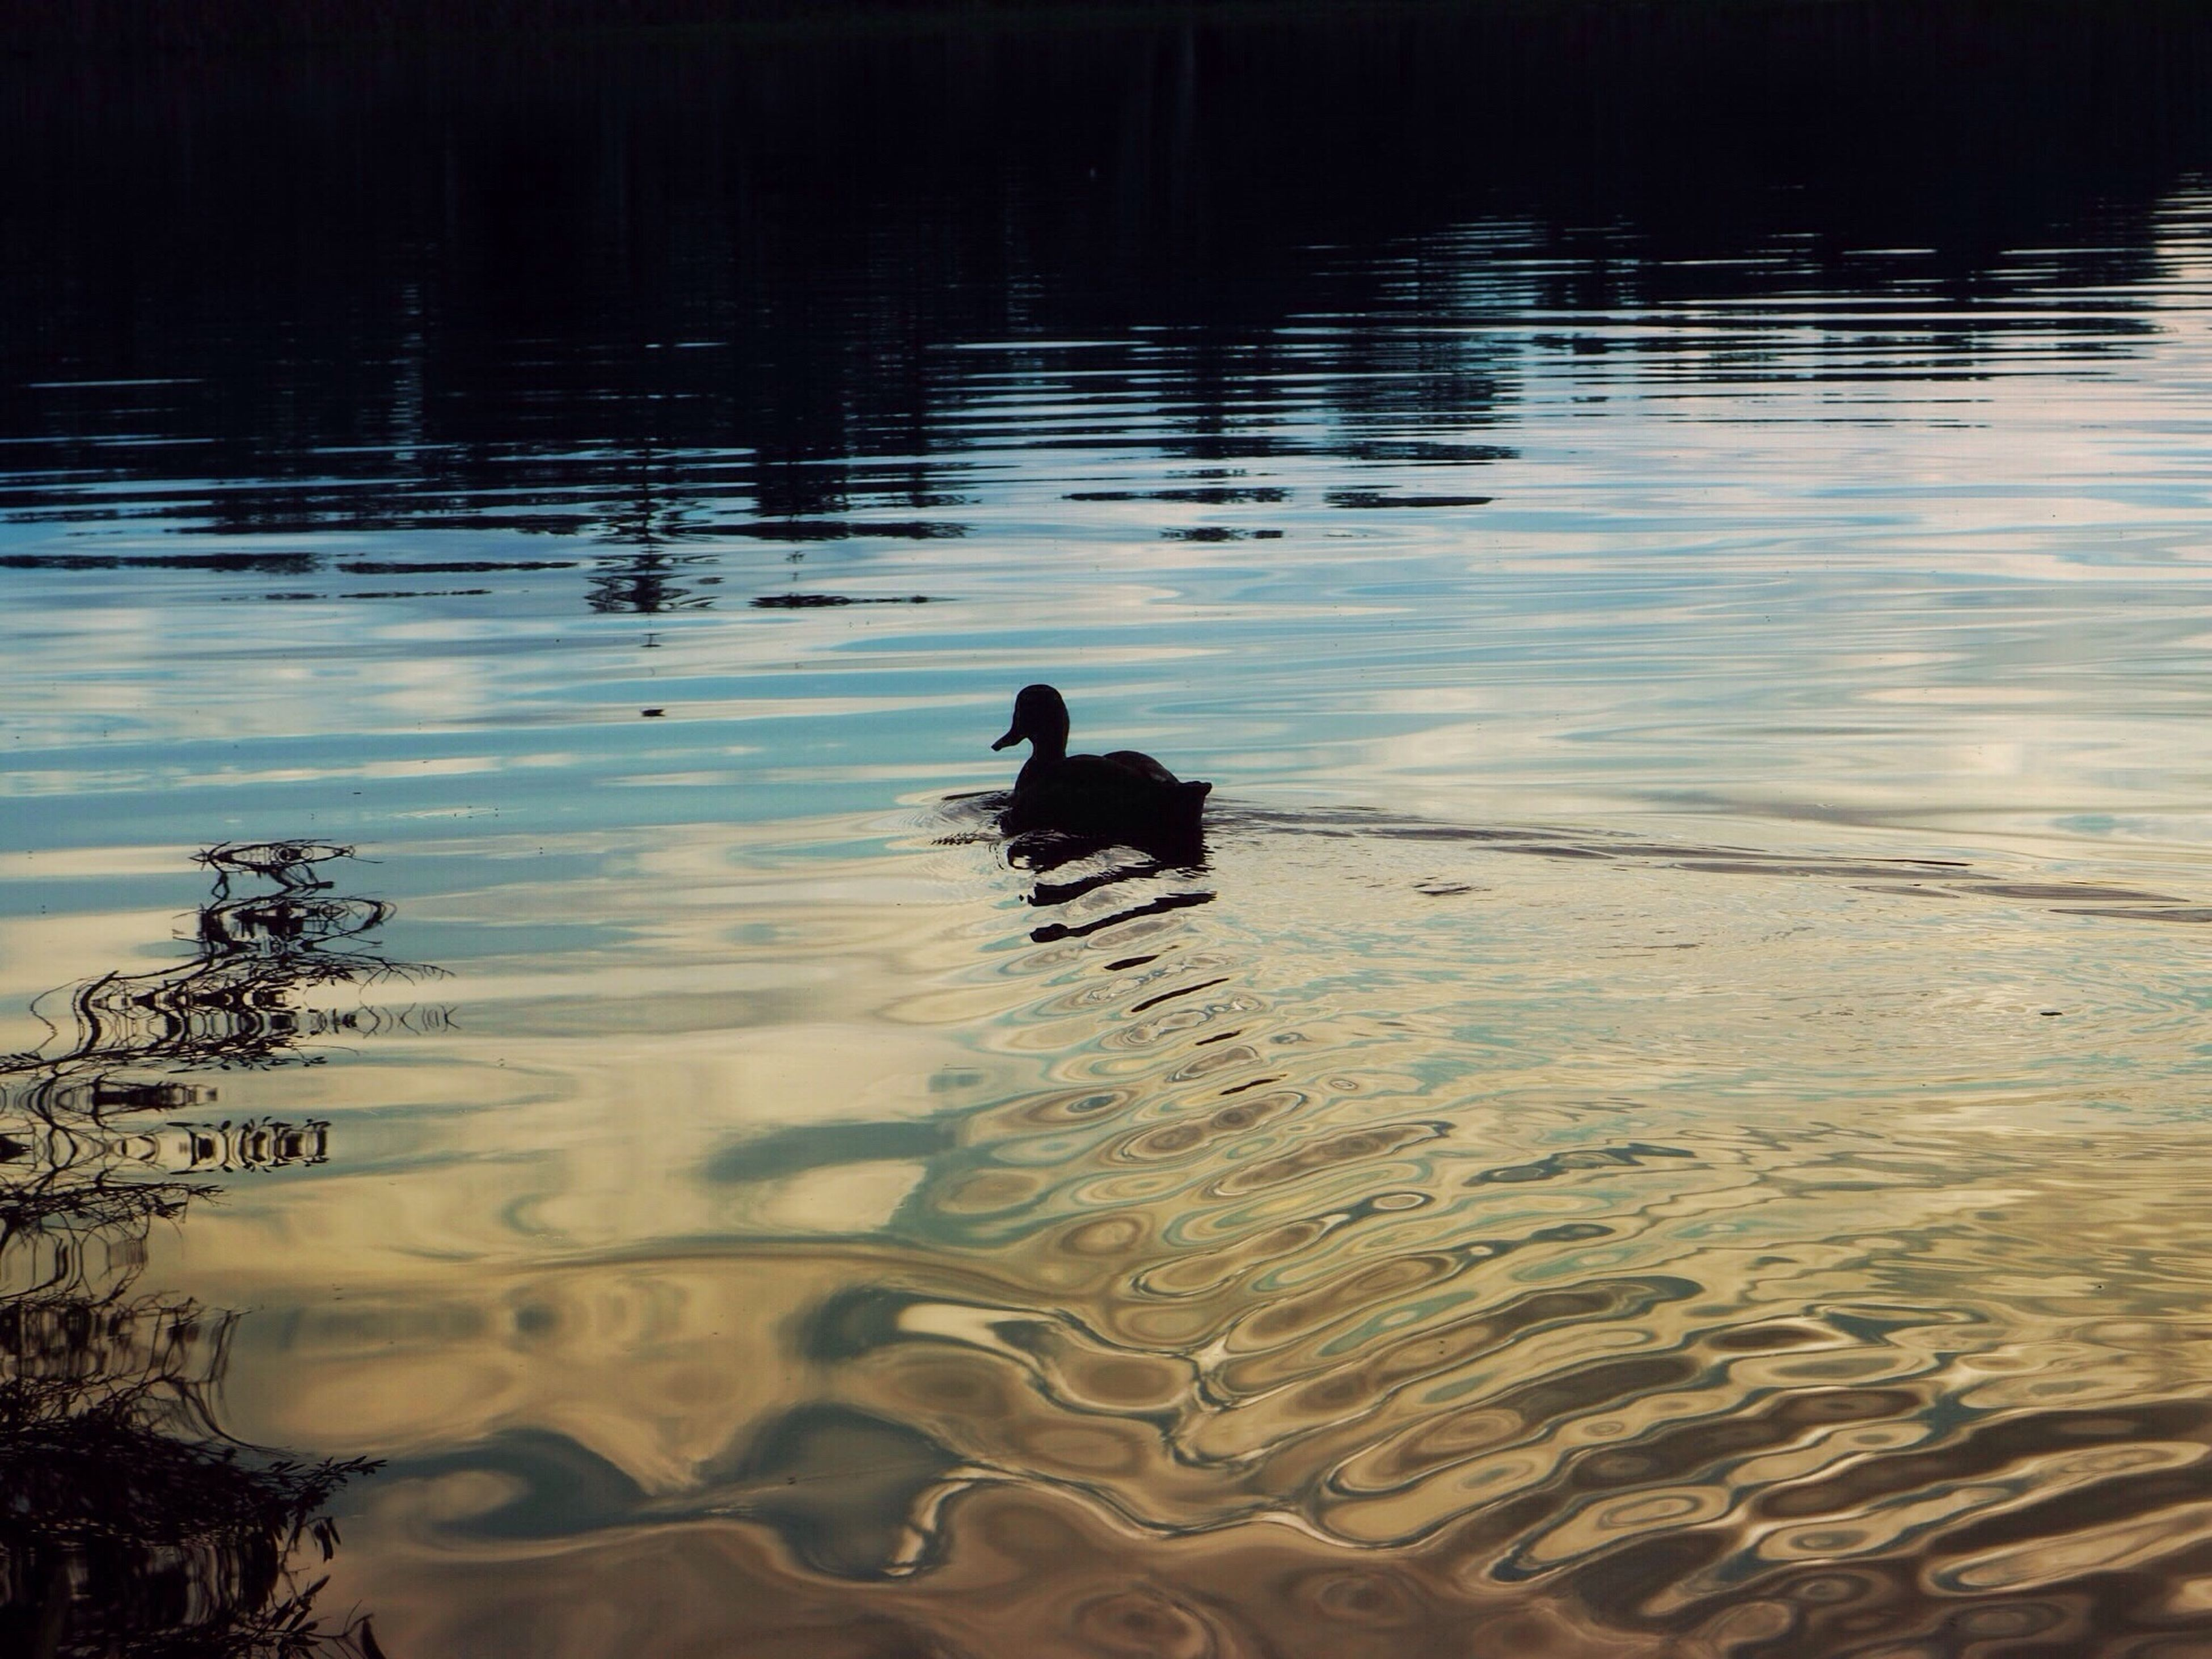 animal themes, water, one animal, lake, reflection, dog, animals in the wild, waterfront, pets, bird, rippled, swimming, wildlife, nature, duck, mammal, black color, outdoors, domestic animals, water bird